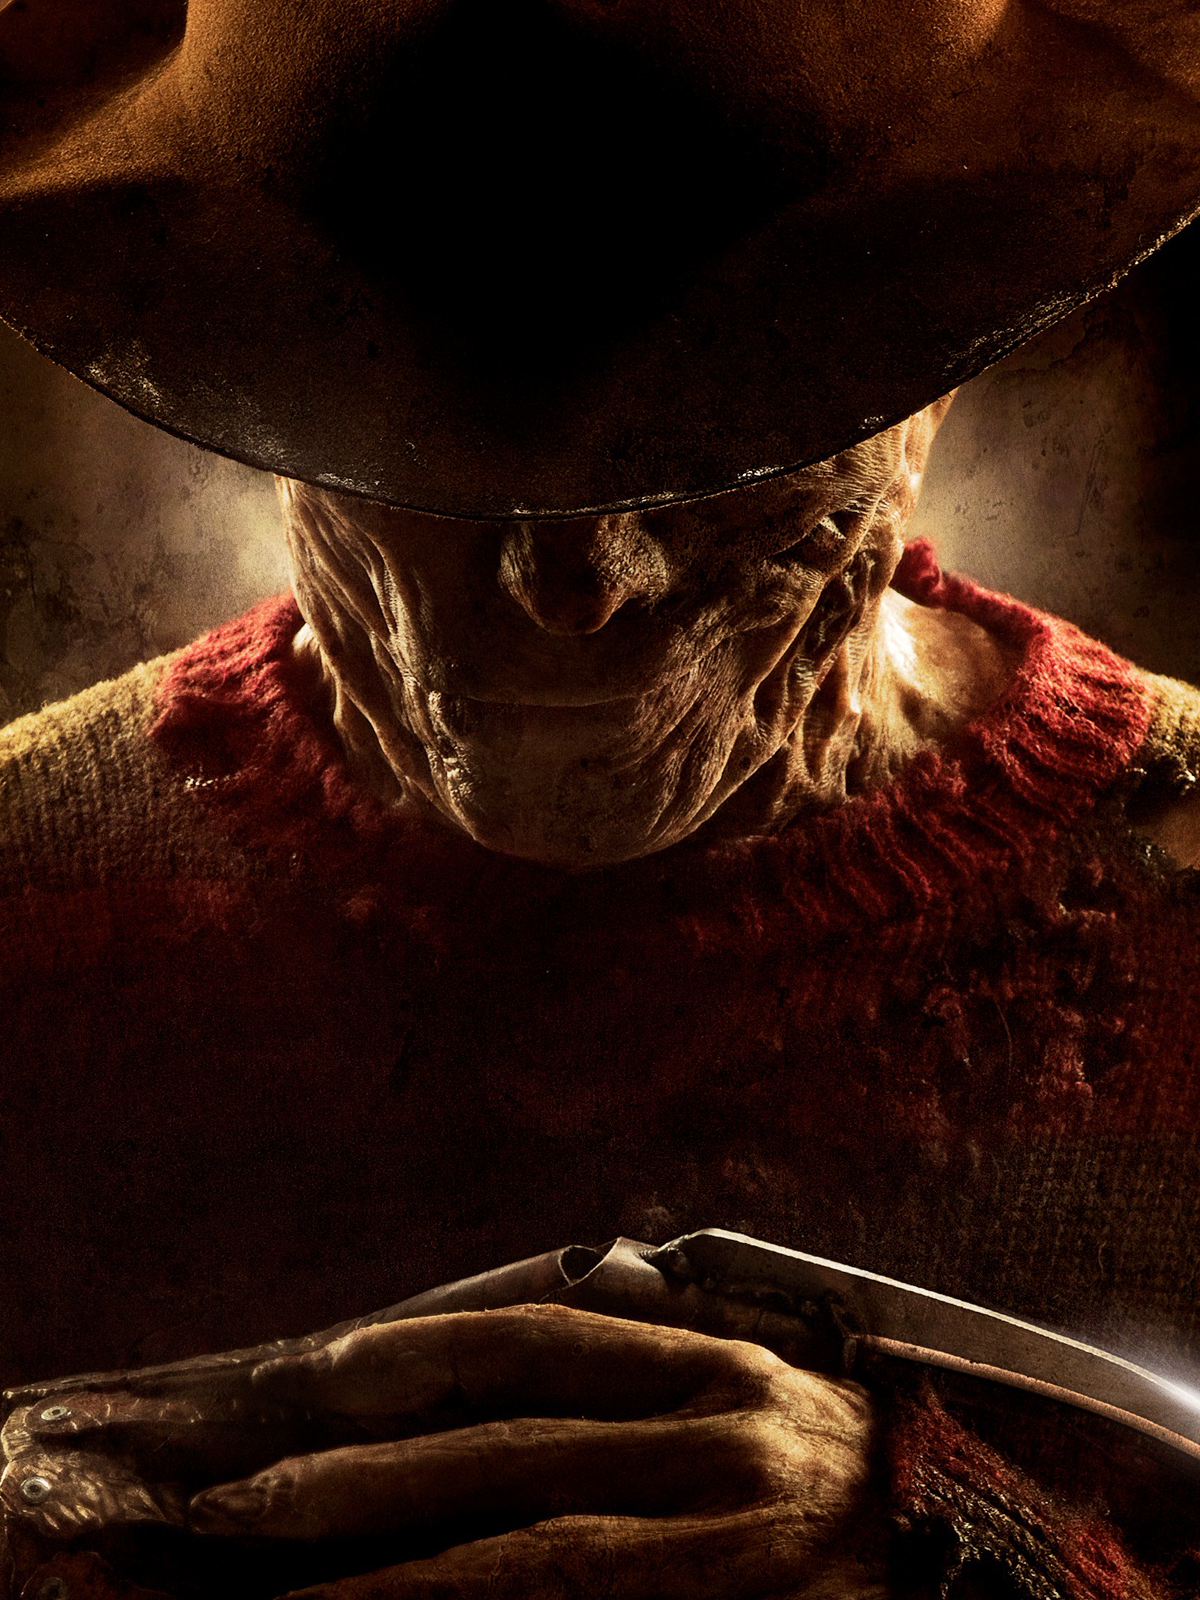 Freddy Kruger Wallpapers - WallpaperSafari